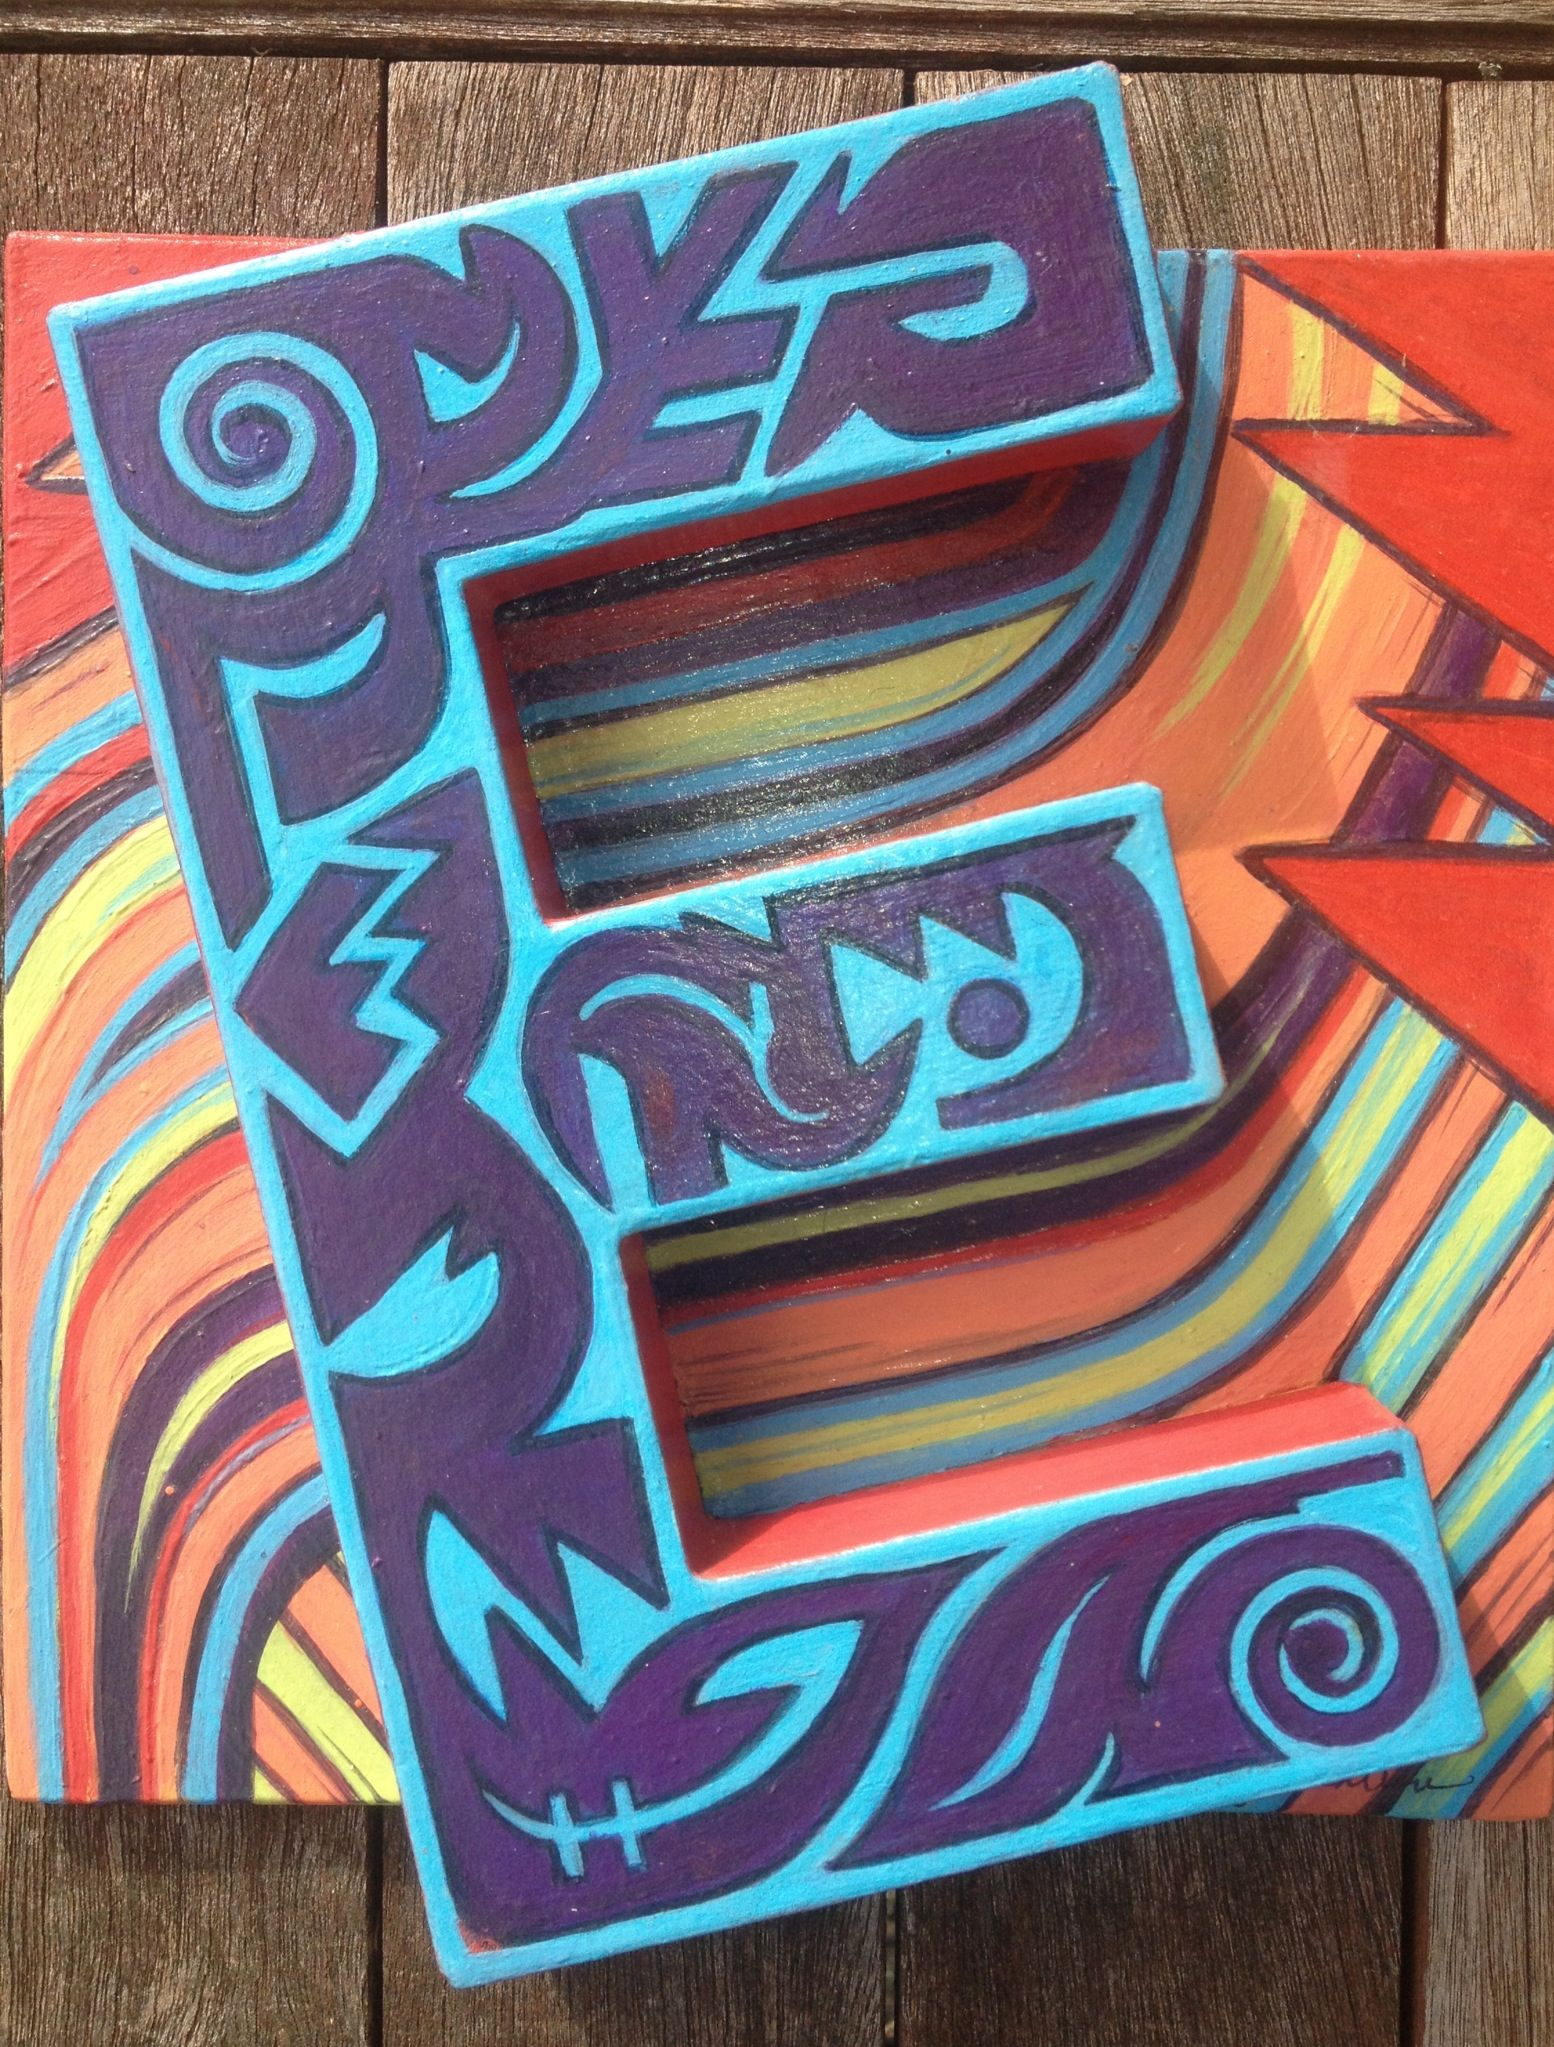 Alphabet Letter E Painted By Katy Bratun Paper Mache Letter Glued To Recycled Wood Board Acrylic Paint Alphabet Art Alphabet Design Lettering Alphabet